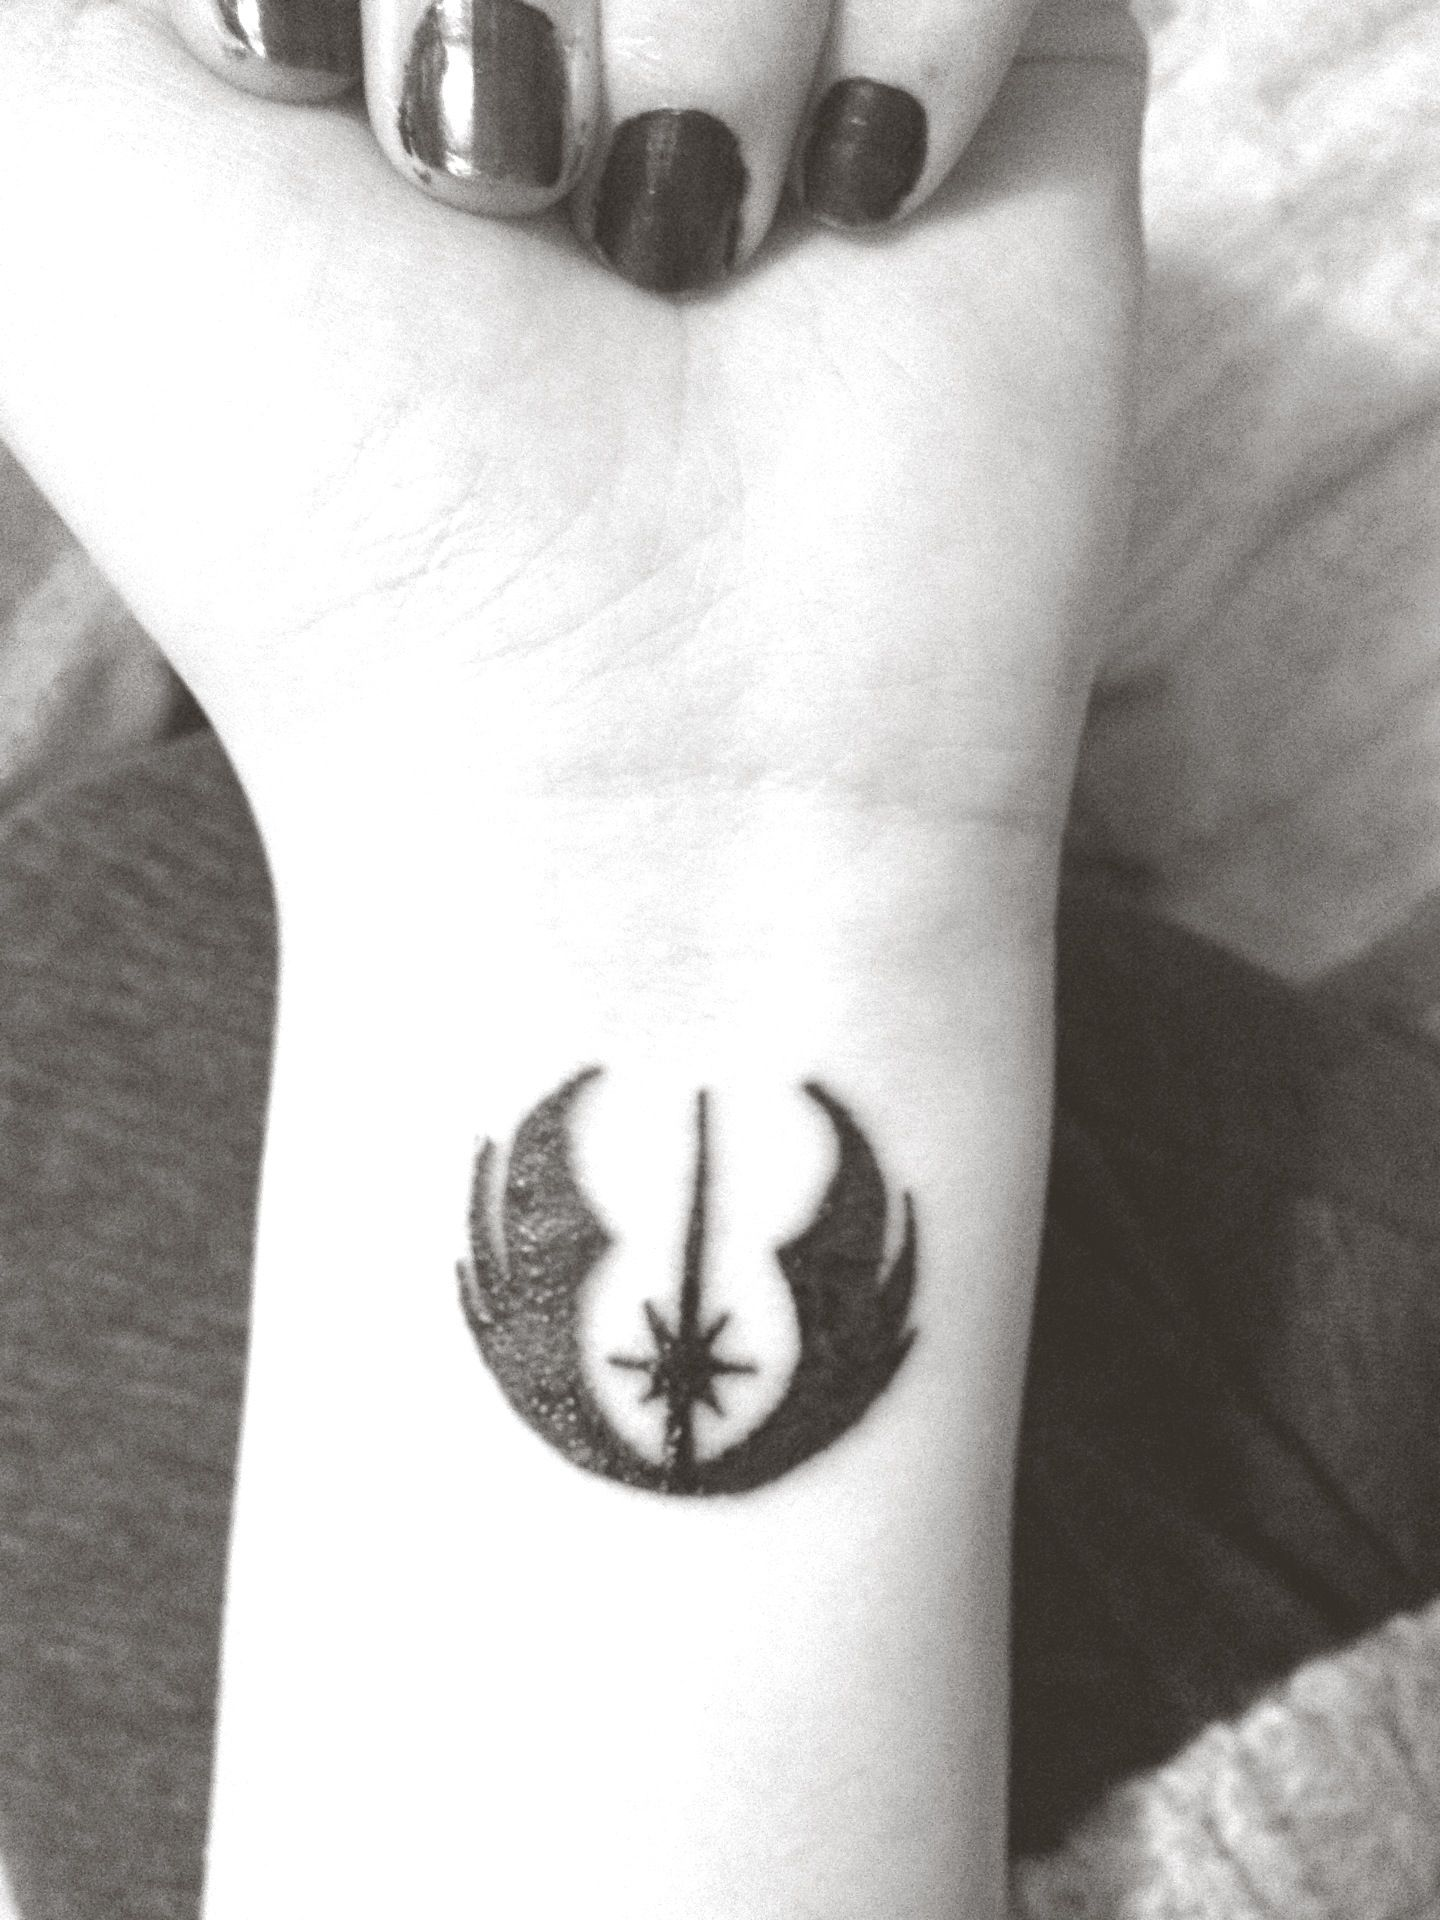 Im Planning To Get A Tattoo Of The Jedi Order Symbol Maybe Not On